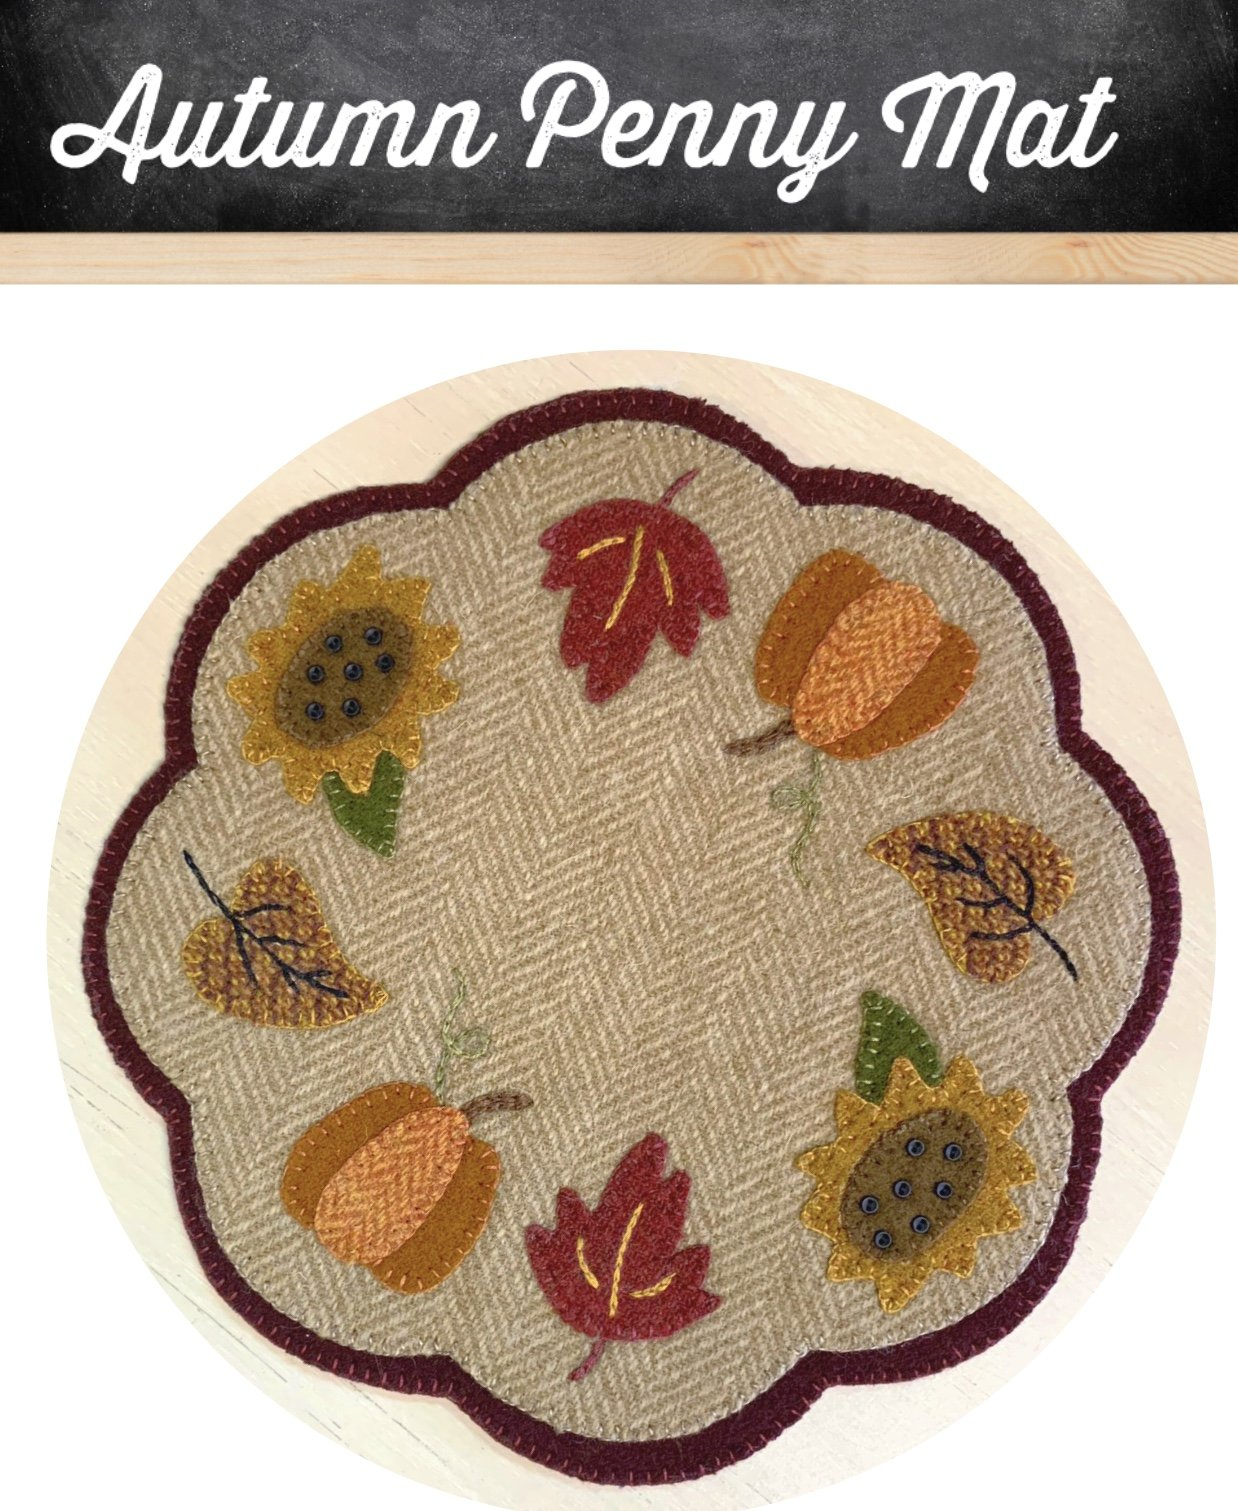 Autumn Penny Mat *Kit & Pattern